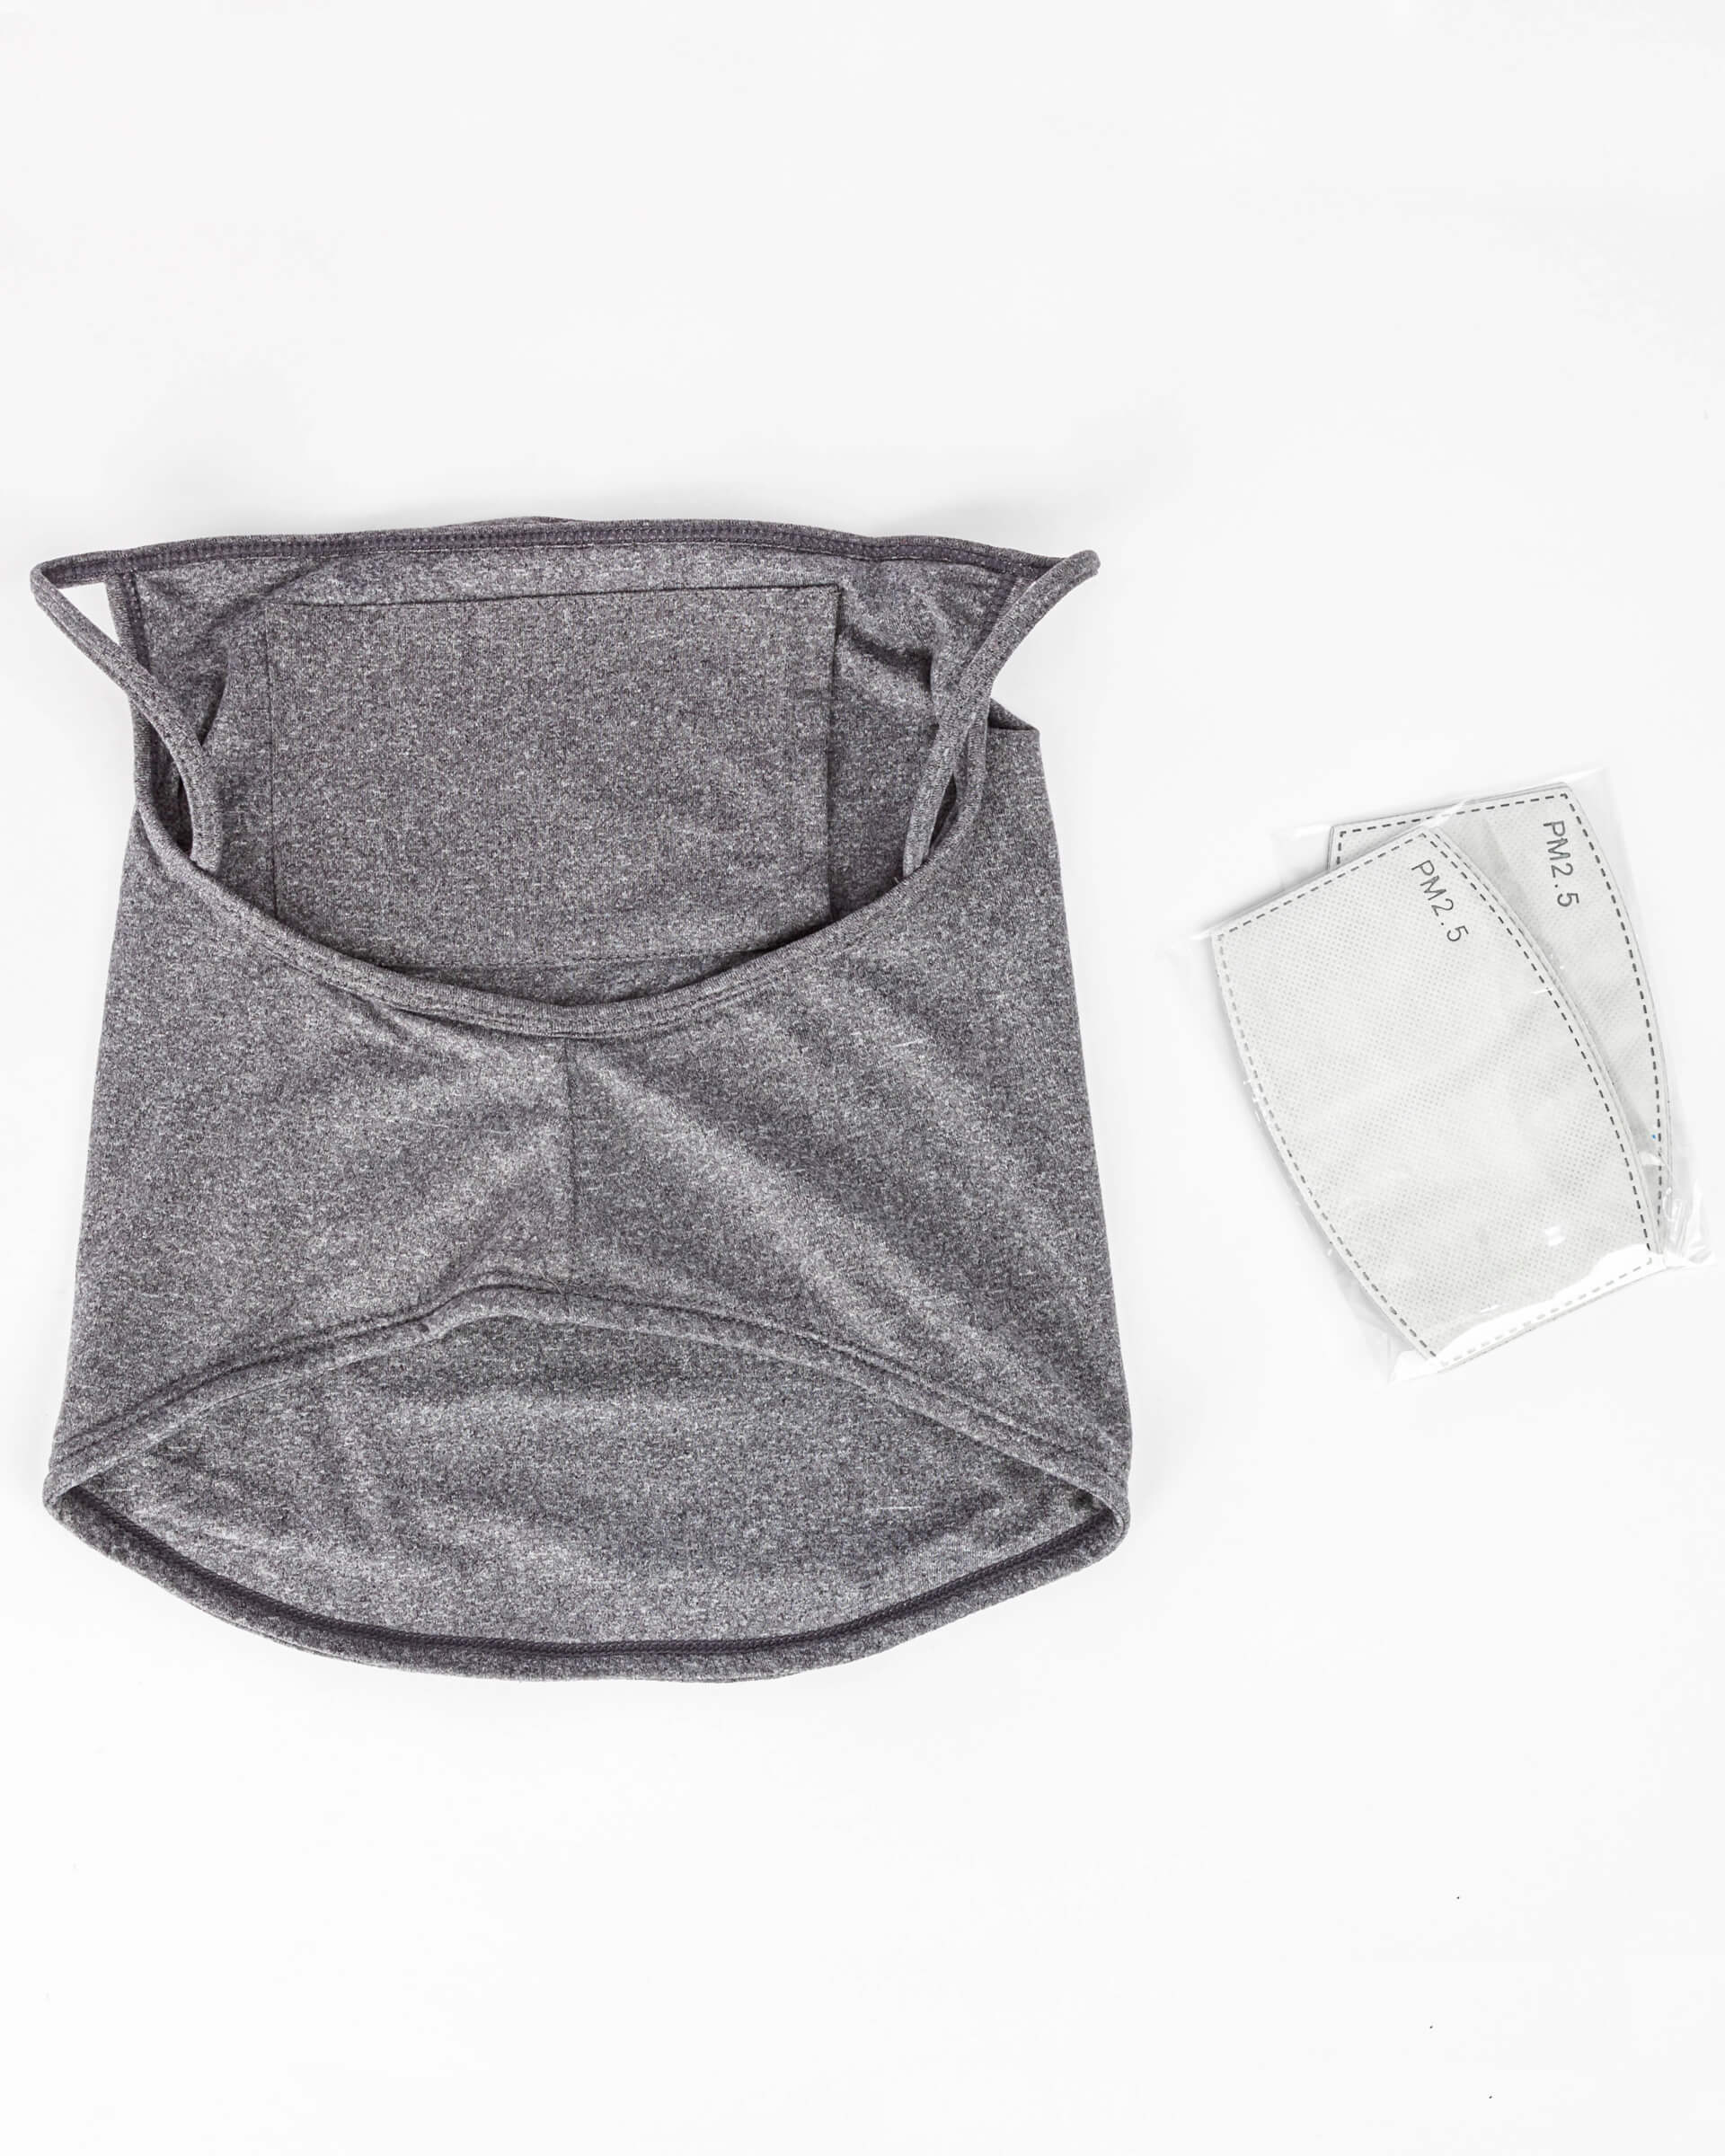 Men's Protective Face Mask Gaiter w/ Filter Pocket - 2PC Set